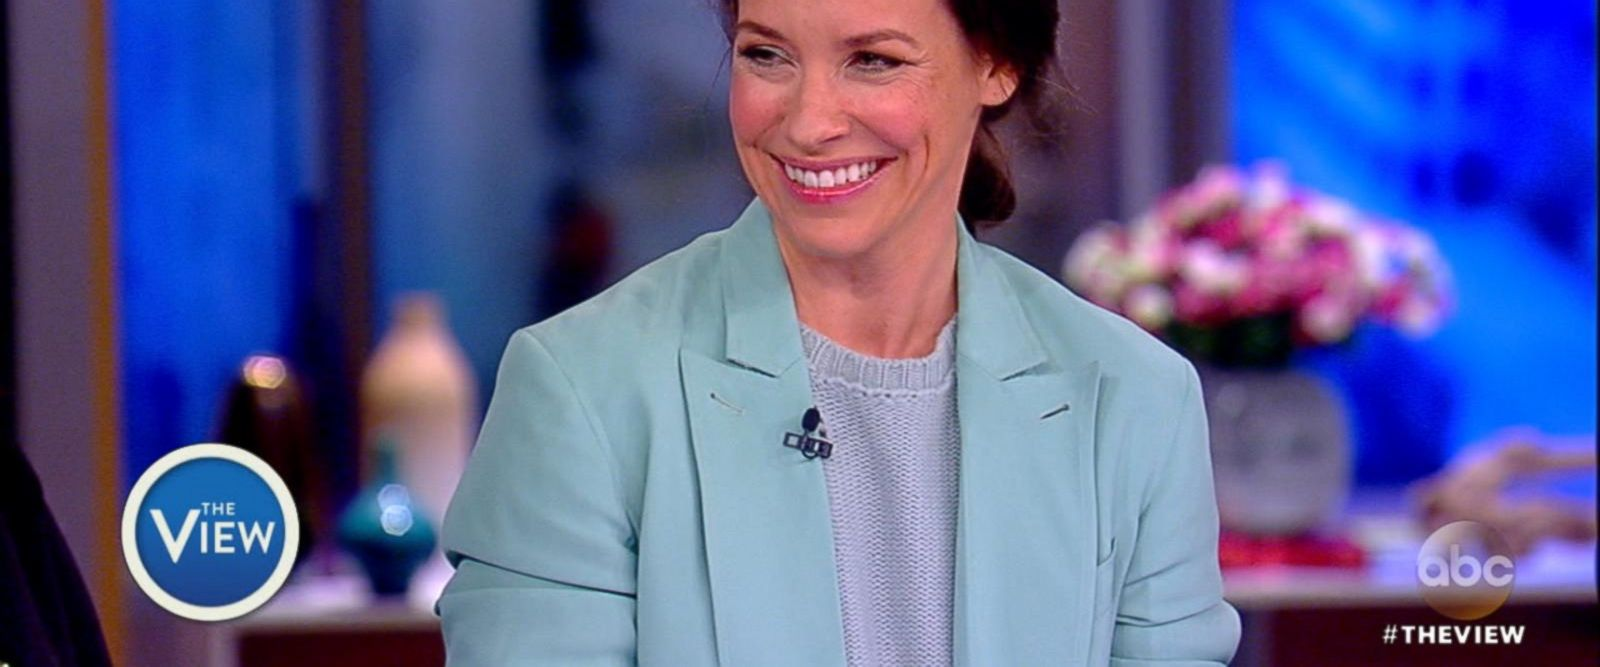 VIDEO: Evangeline Lilly on making history in 'Ant-Man and the Wasp'